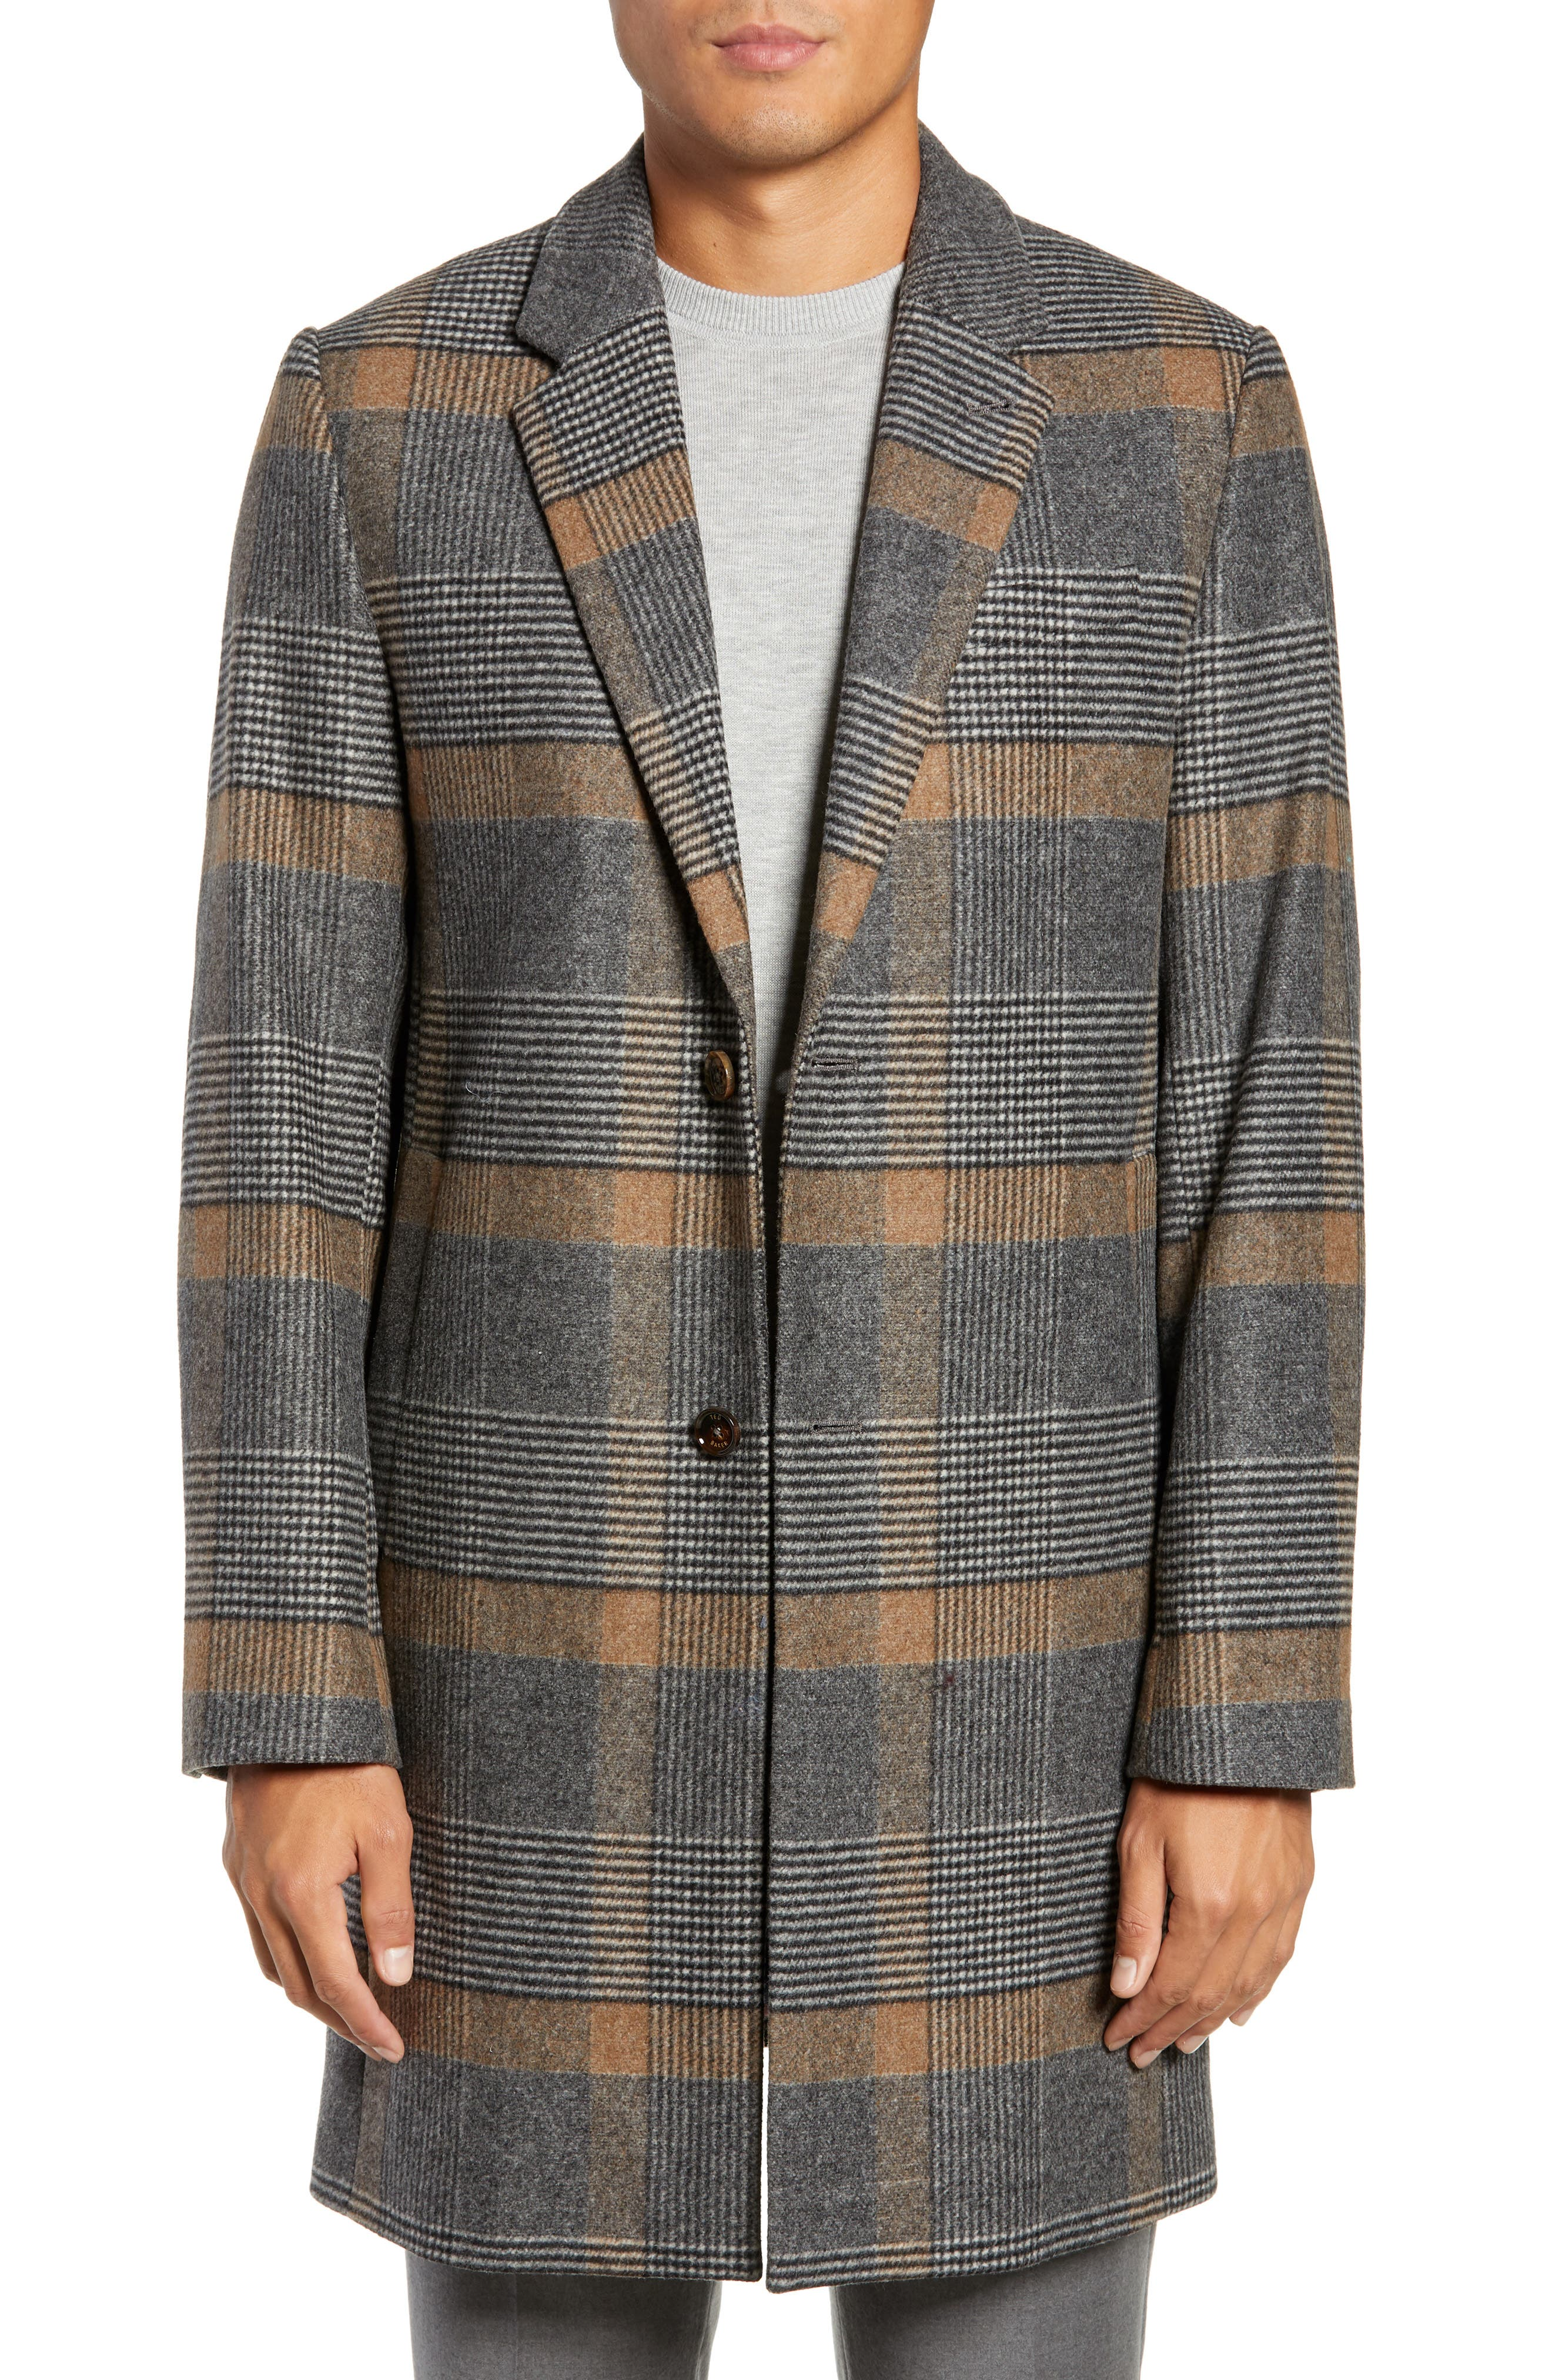 Frais Check Wool Overcoat,                         Main,                         color, CAMEL